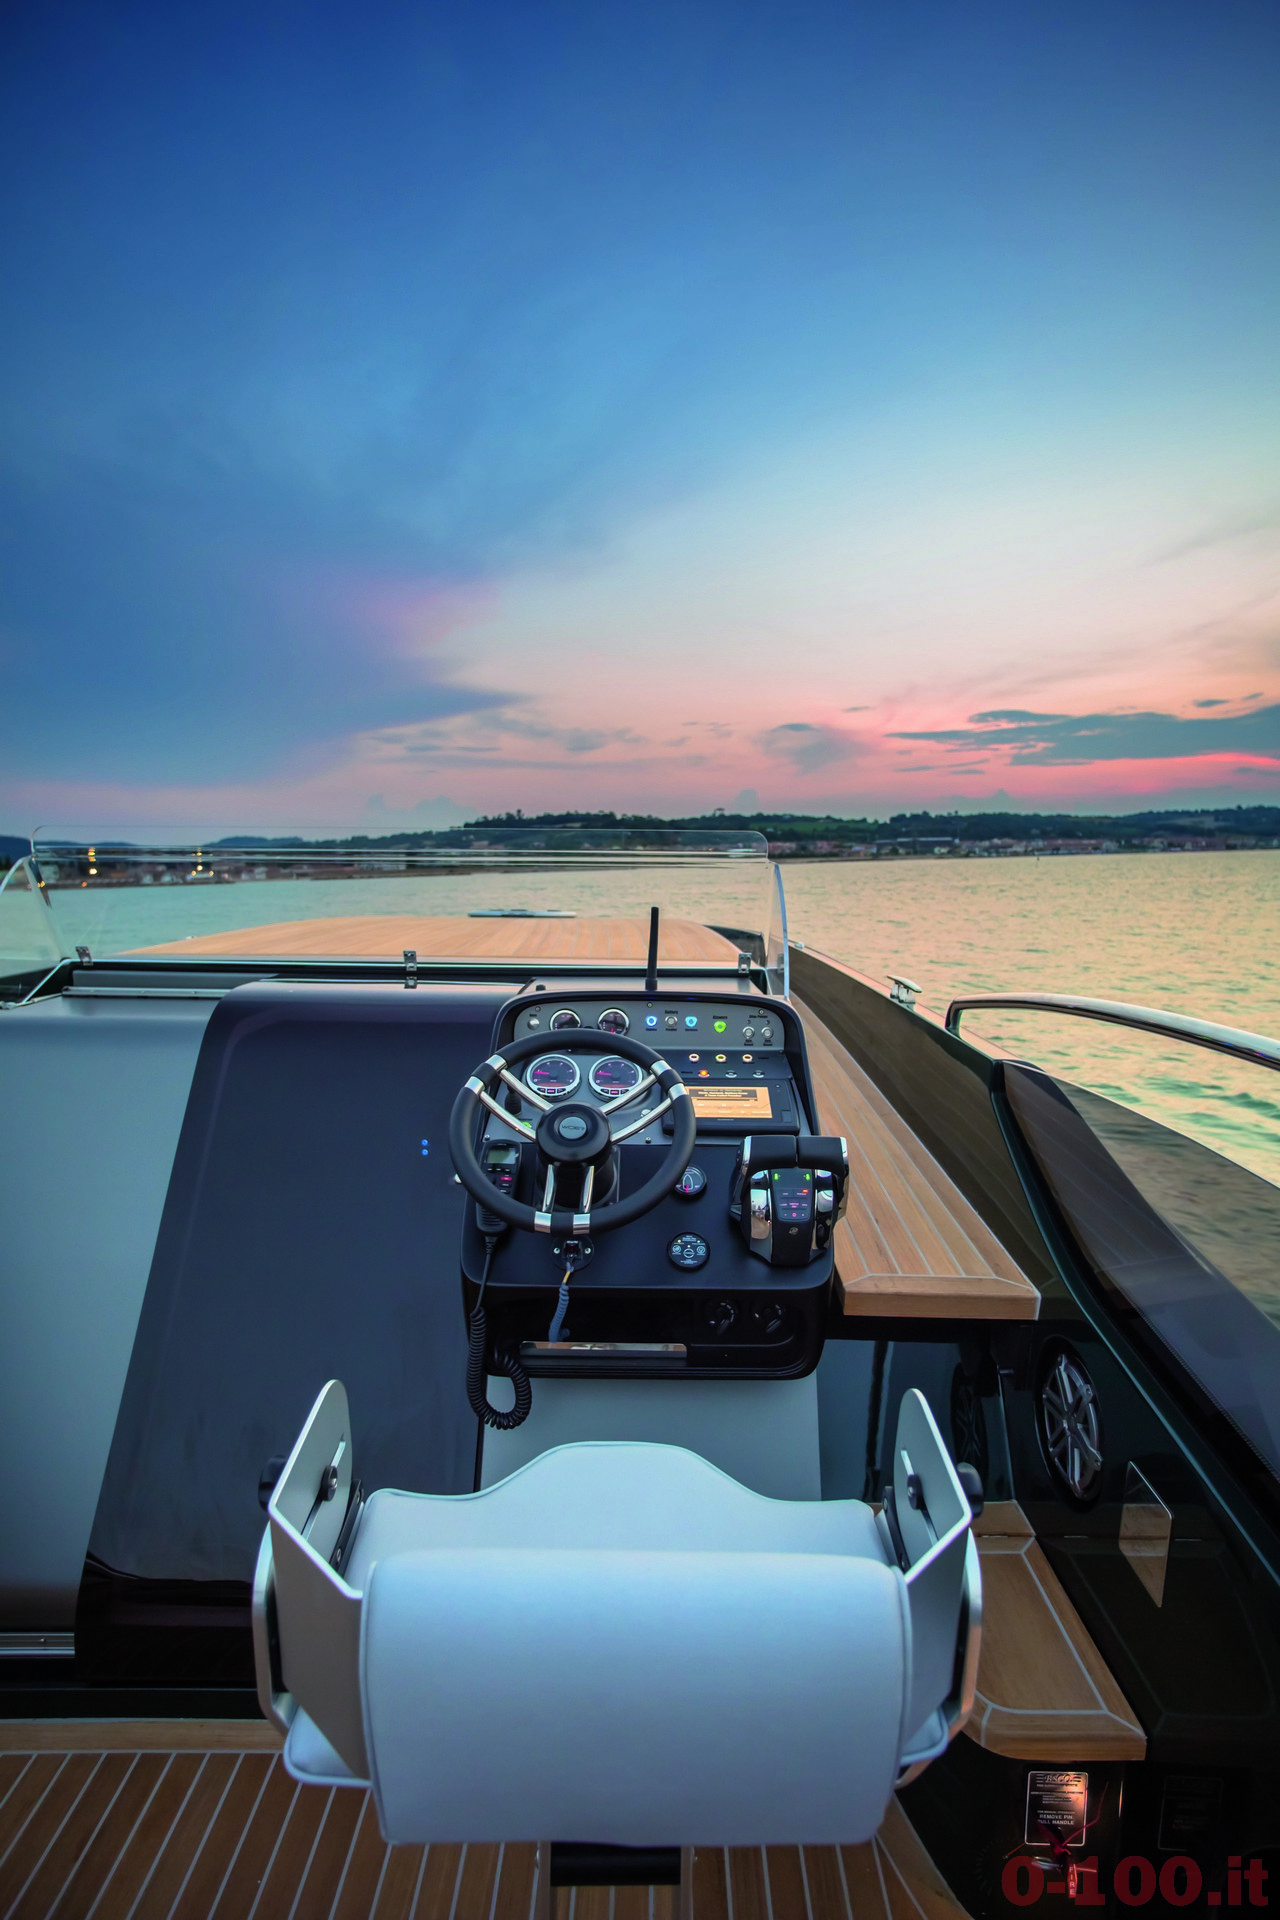 cannes-yachting-festival-2014-wider-32-tender-express-cruiser-0-100_15